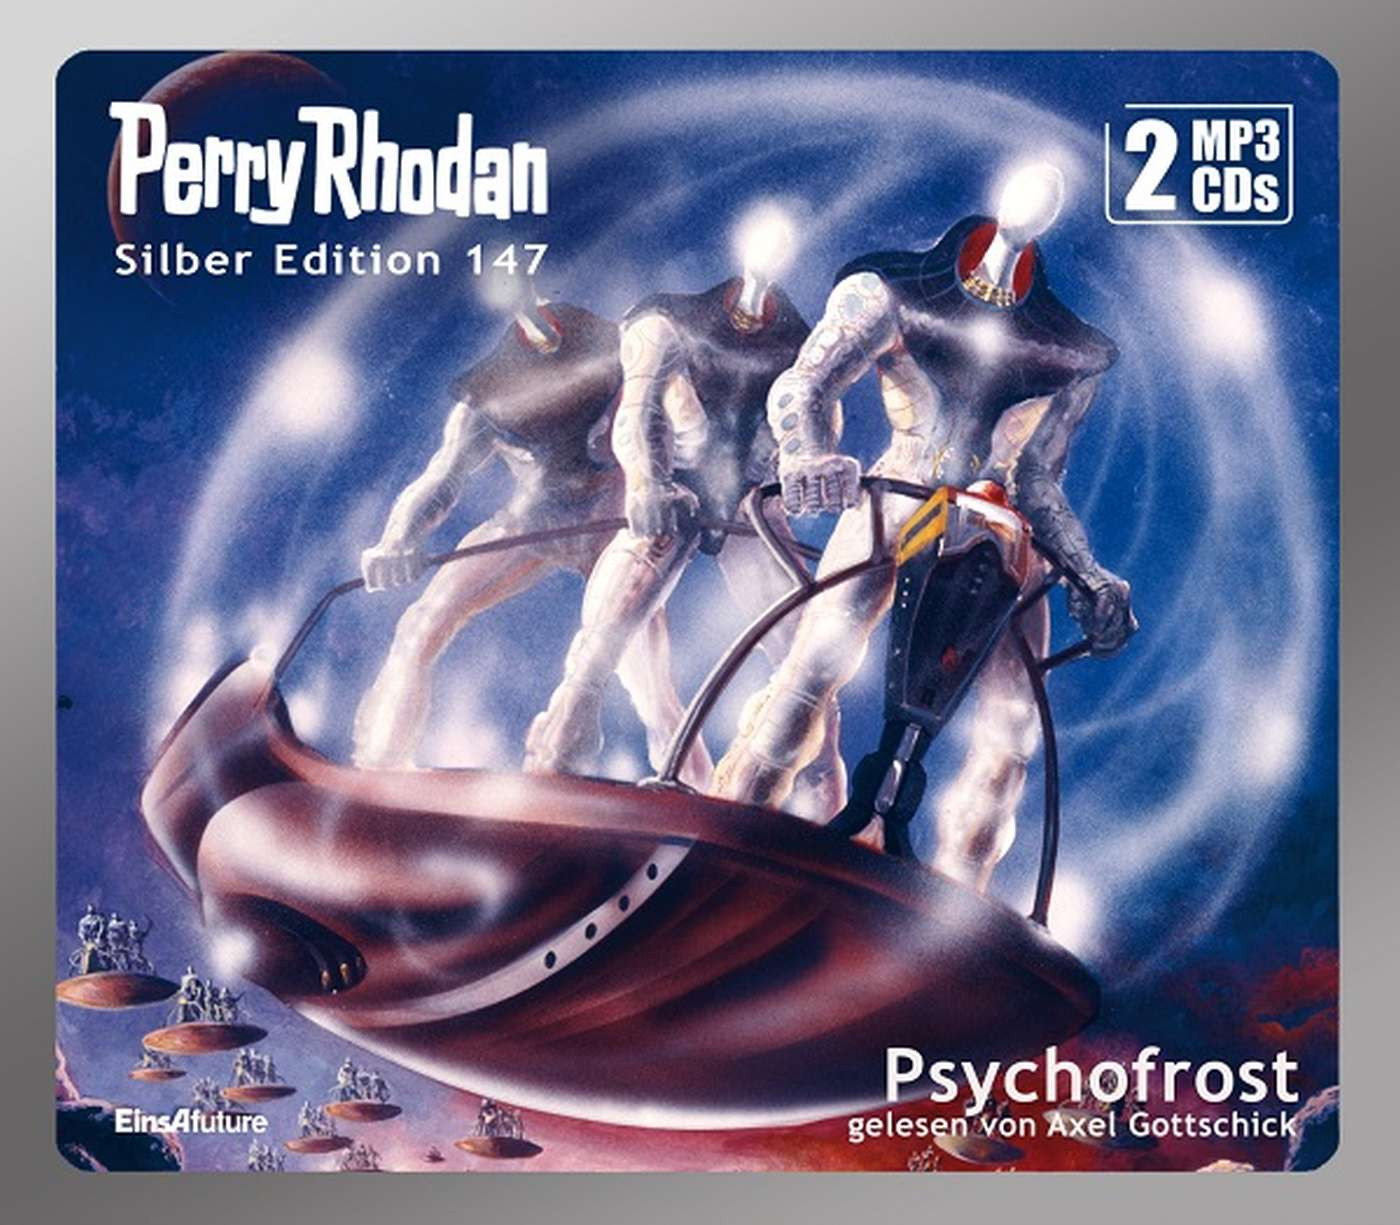 Perry Rhodan Silber Edition 147: Psychofrost (2 mp3-CDs)